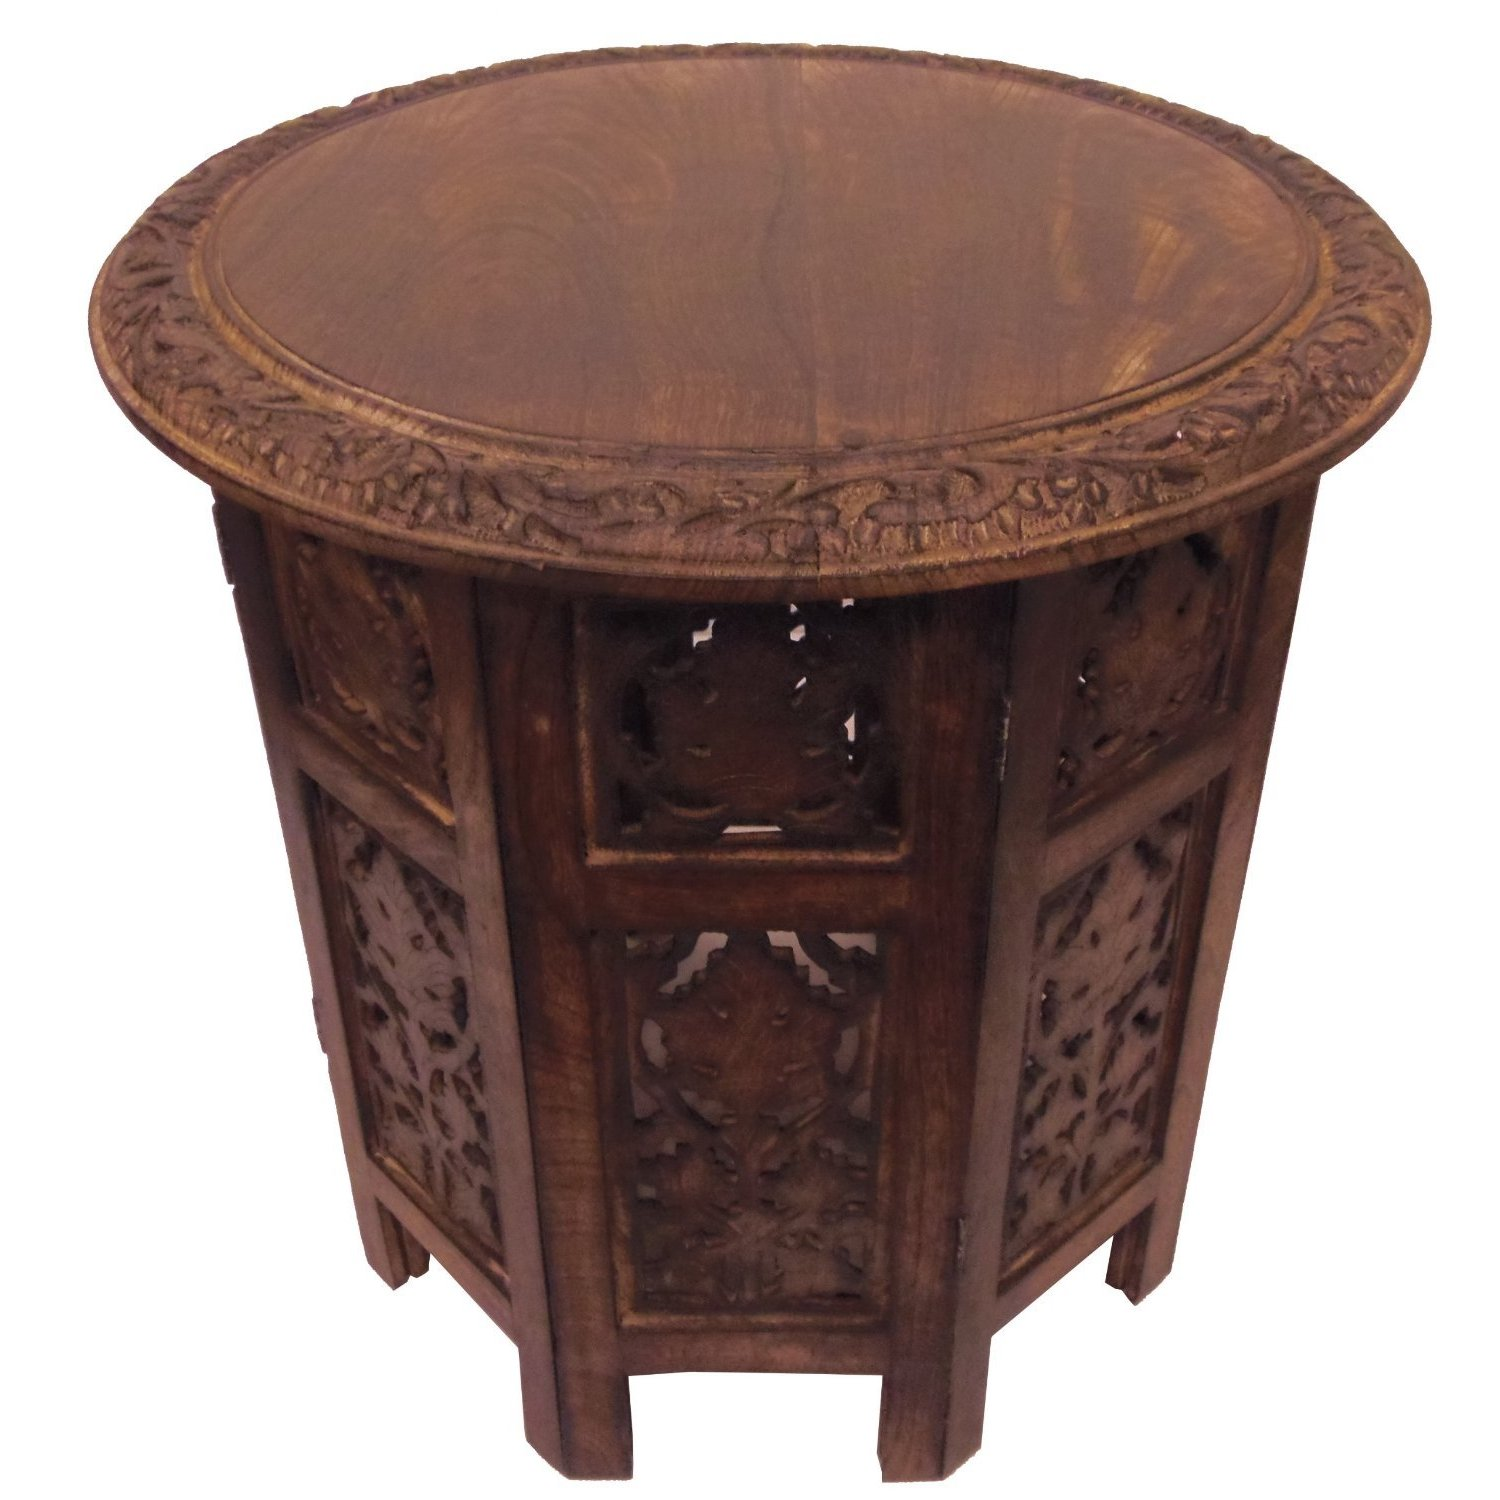 celebration folding hand carved wood accent table free shipping today hardwood nightstand with charging station large marble dining room and chair sets wire end trestle white